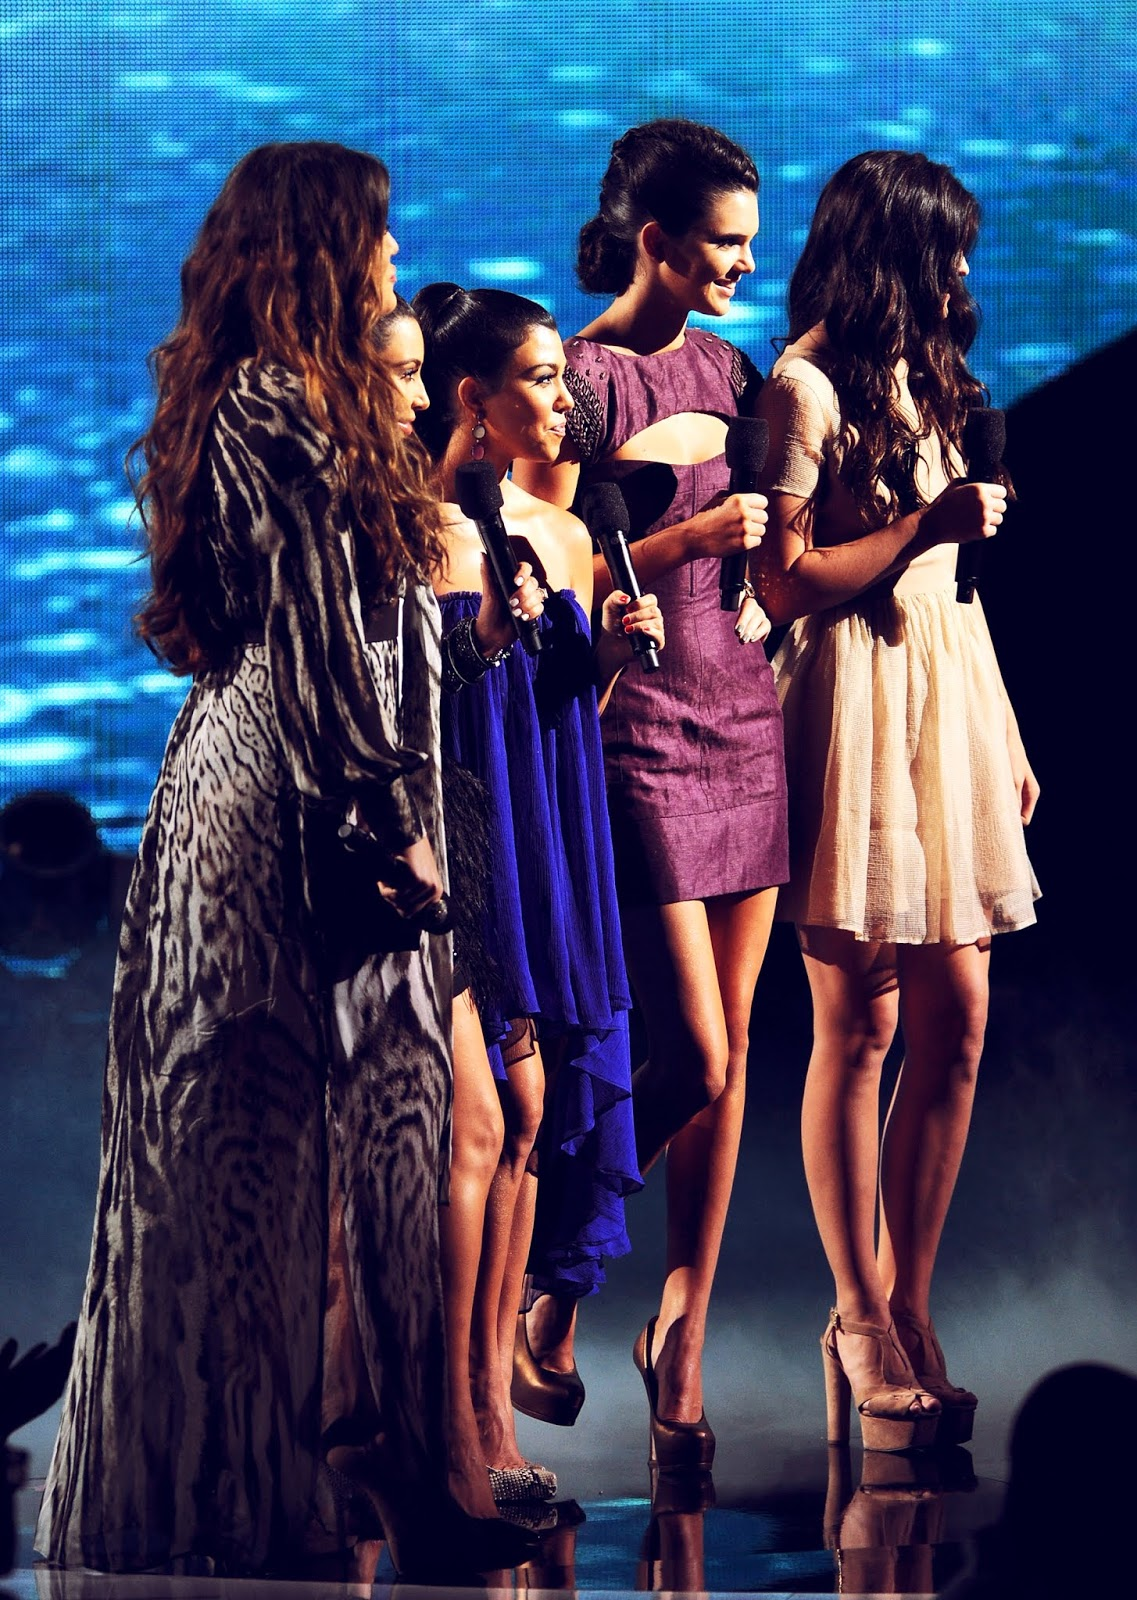 10 - Teen Choice Awards in August 11, 2011